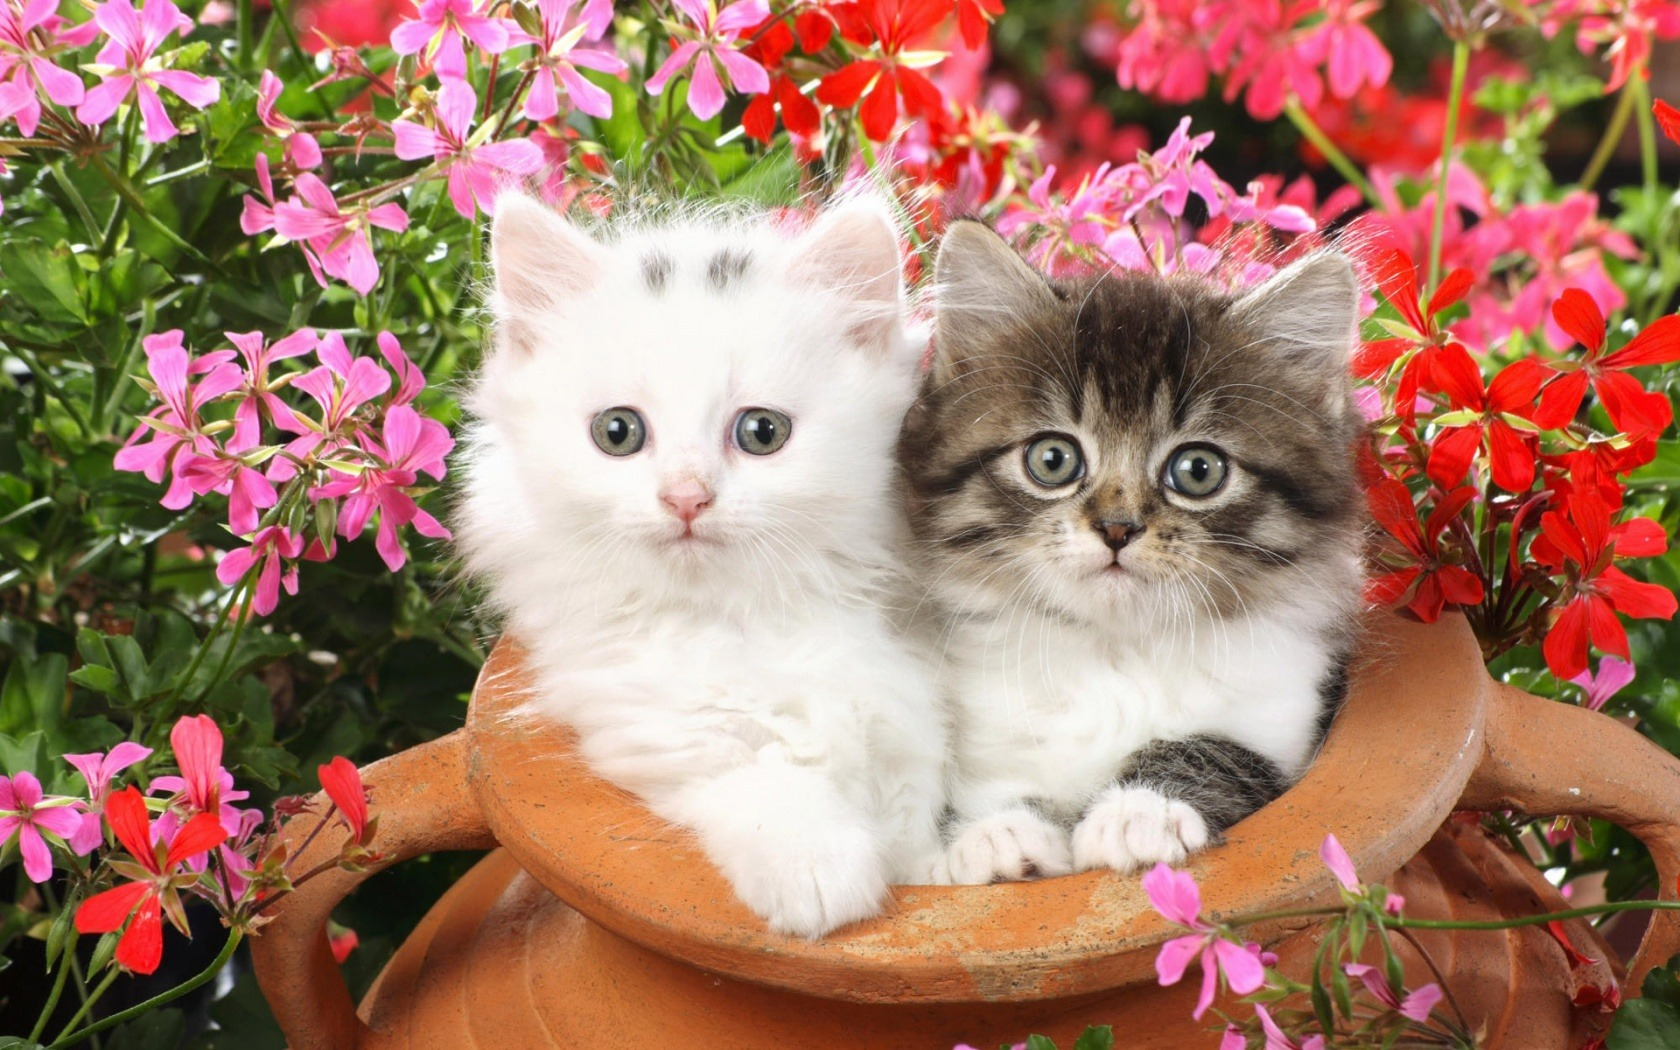 Cute Cats #5 | Cute Cats |Cute Cat Backgrounds